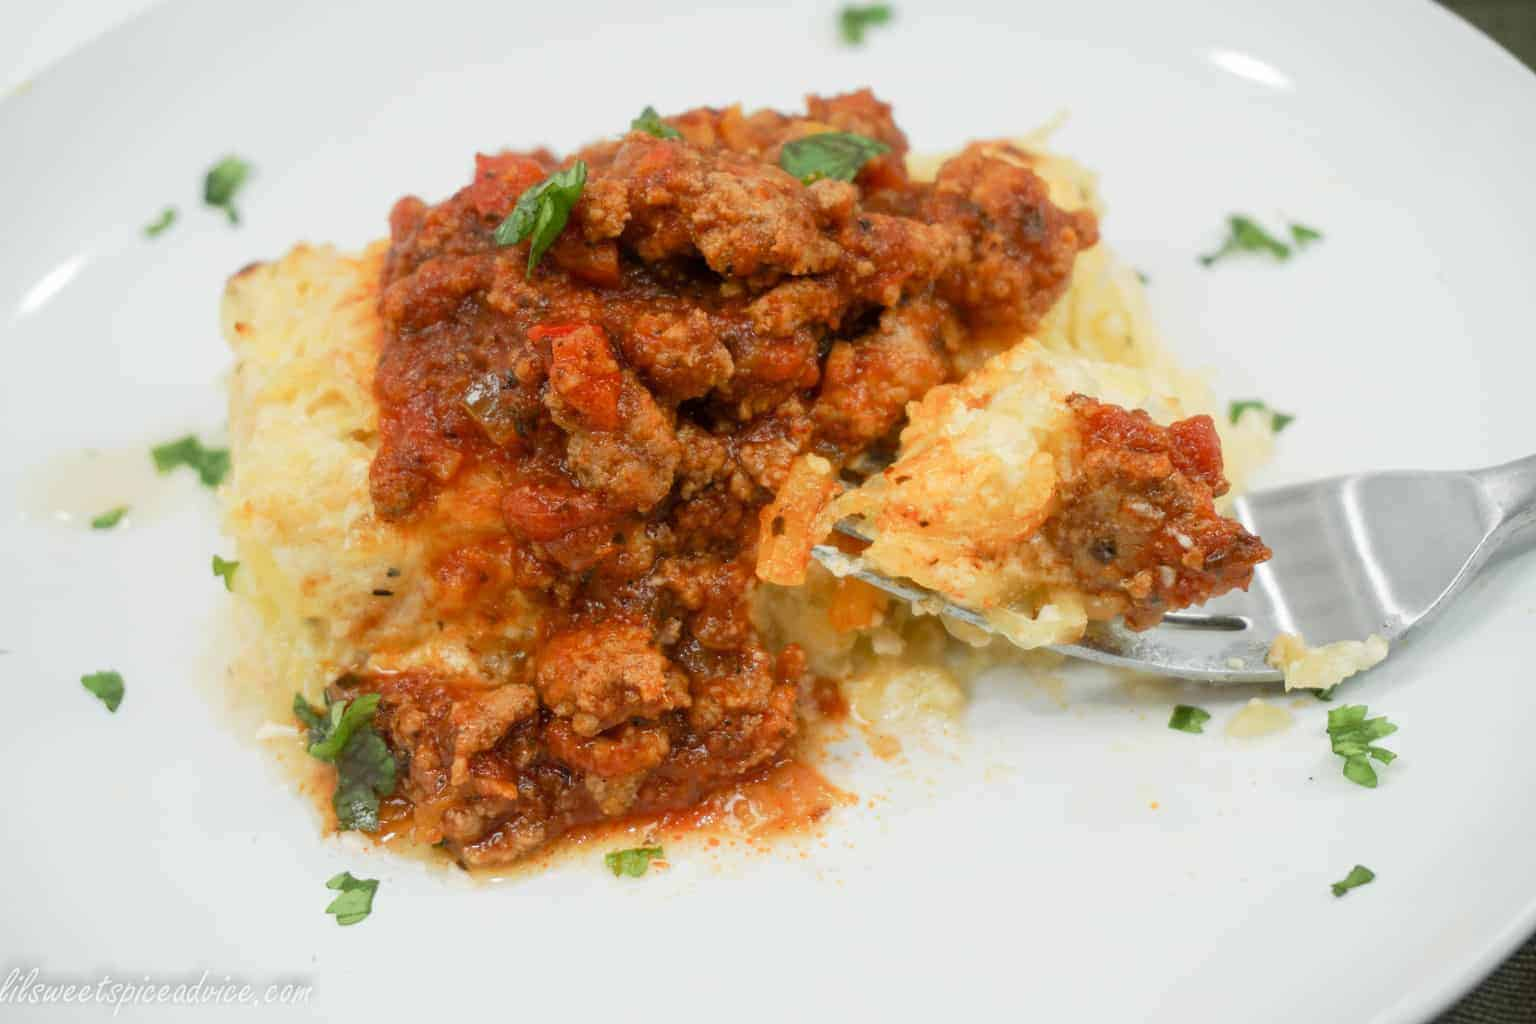 Baked Spaghetti Squash Spasagna -- Creamy four cheese Bechamel sauce and crispy bacon are tossed with spaghetti squash and baked to crusty perfection then topped with spaghetti sauce. -- lilsweetspiceadvice.com